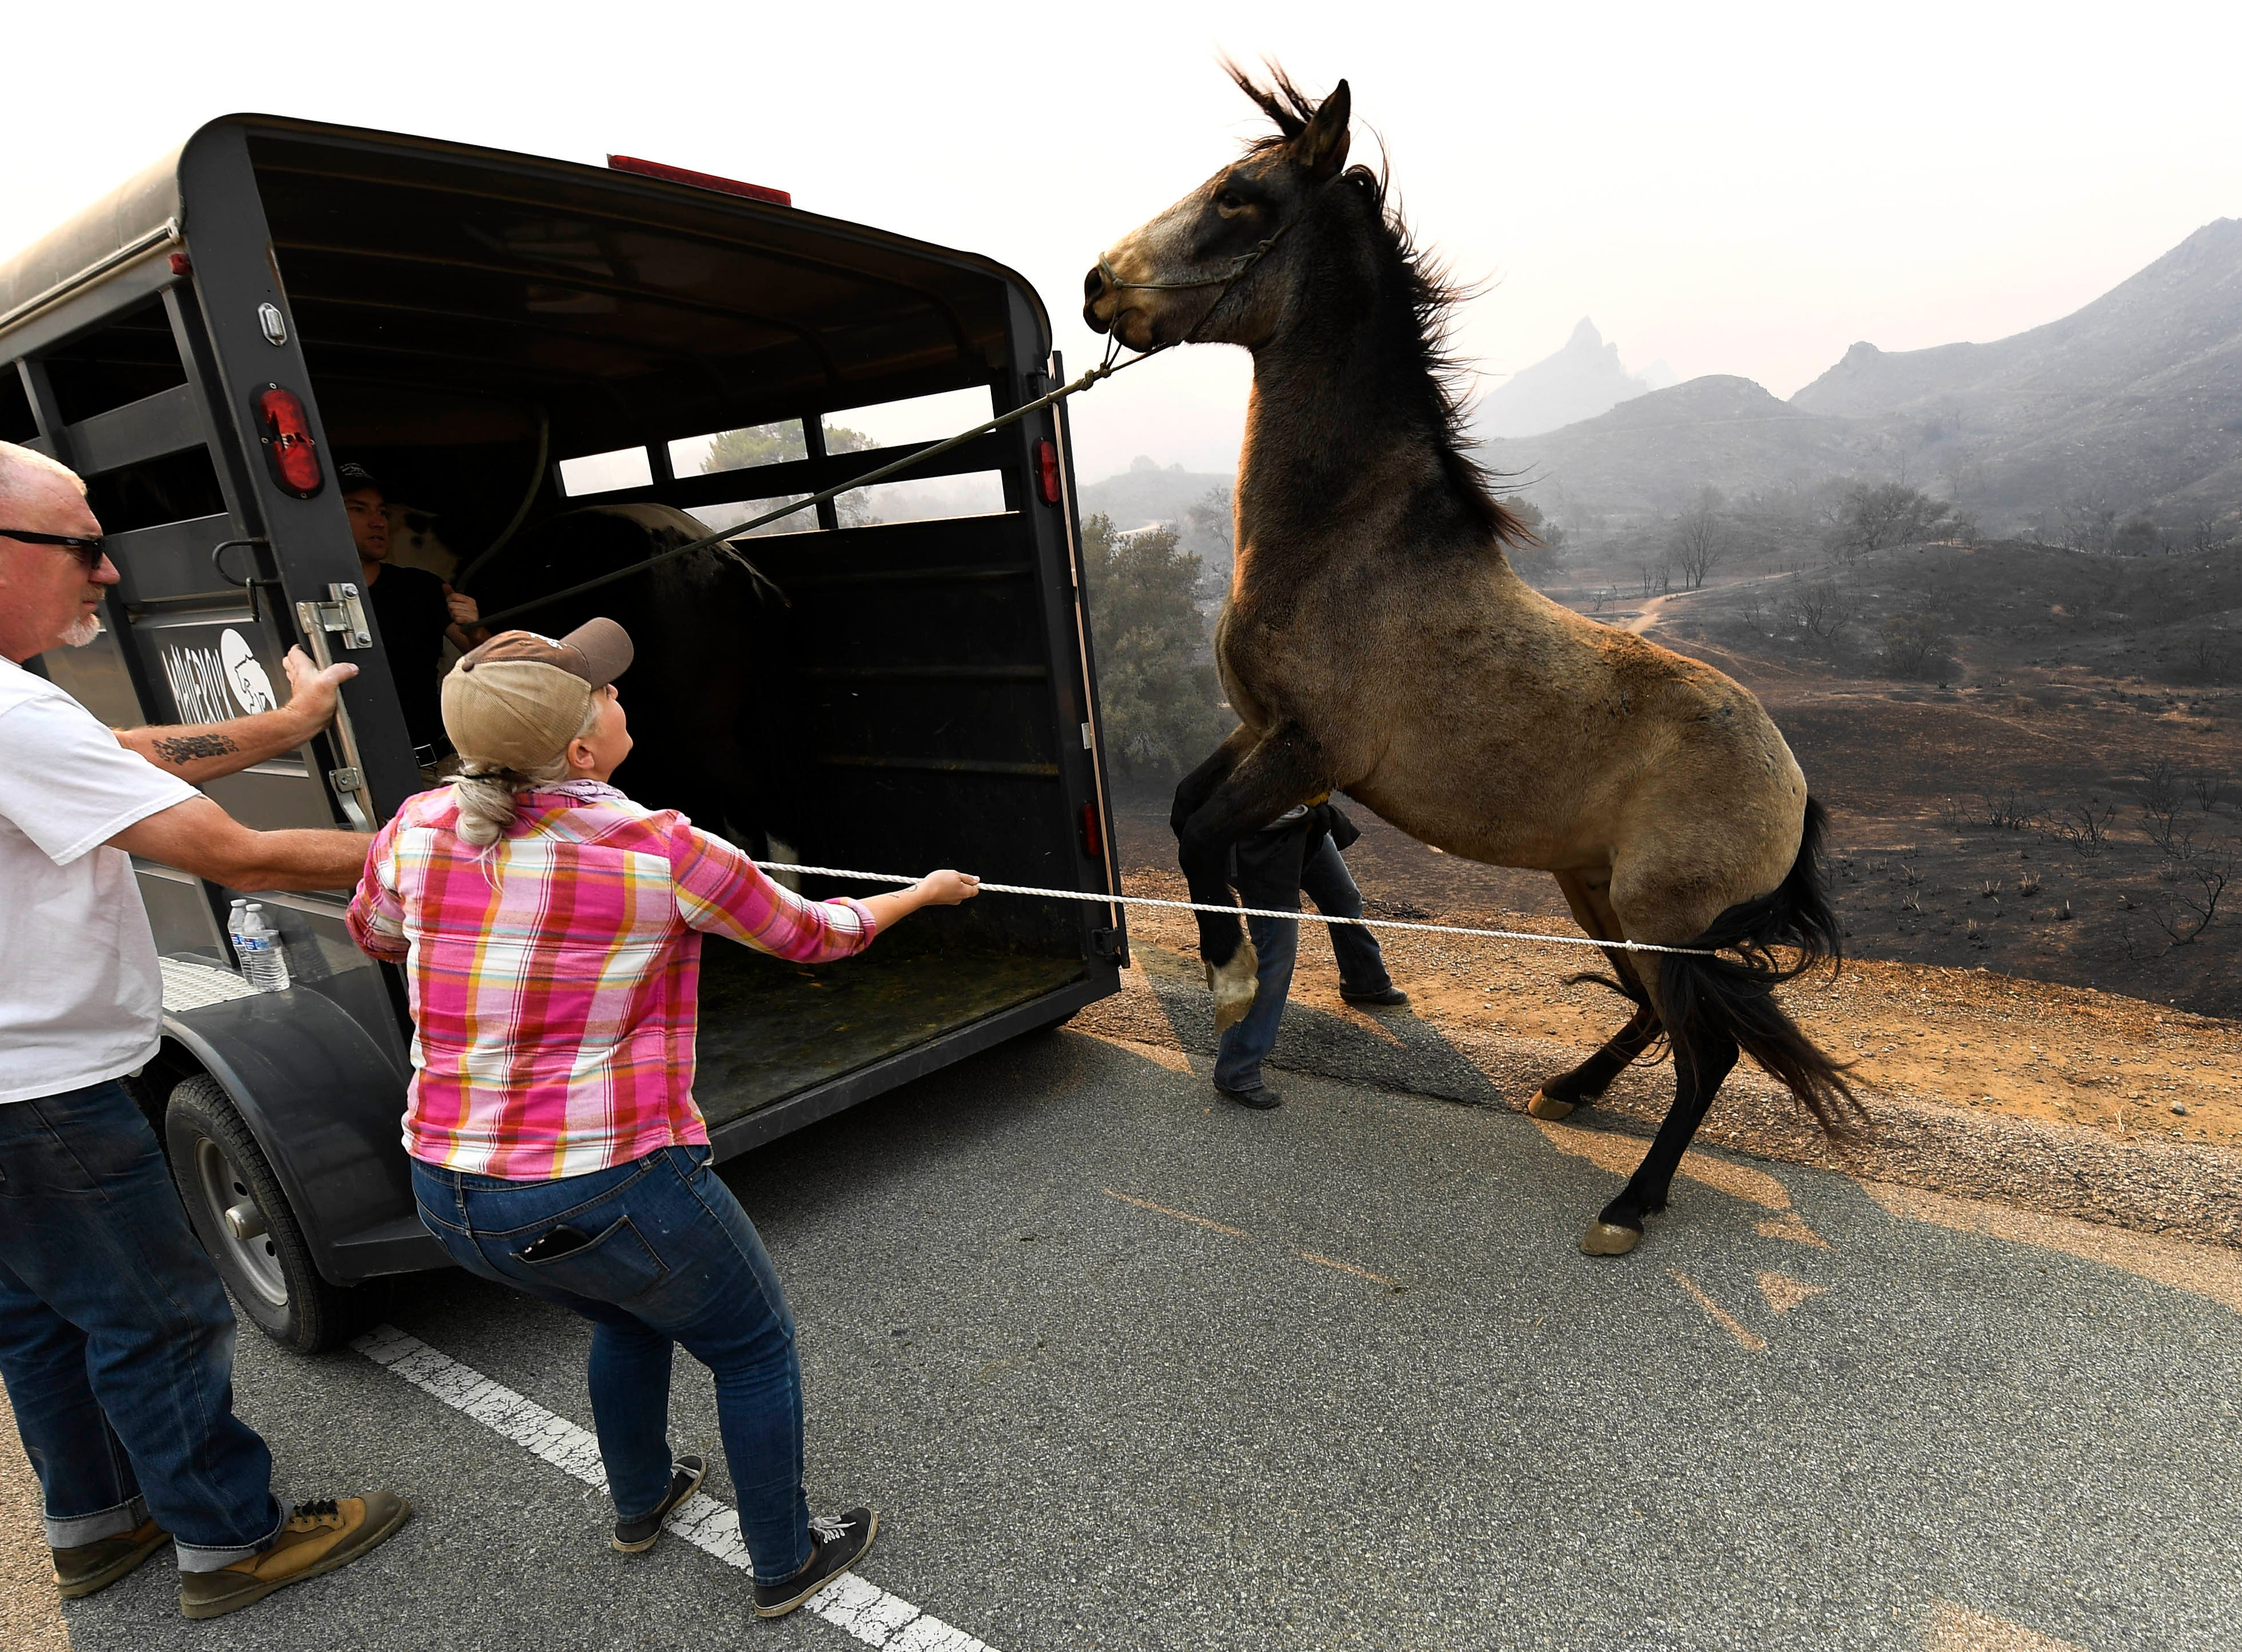 Horses from the White Cloud Ranch on Kanan Road in Malibu are moved from the property on Nov. 10, 2018, after the Woosley Fire blazed through the area.